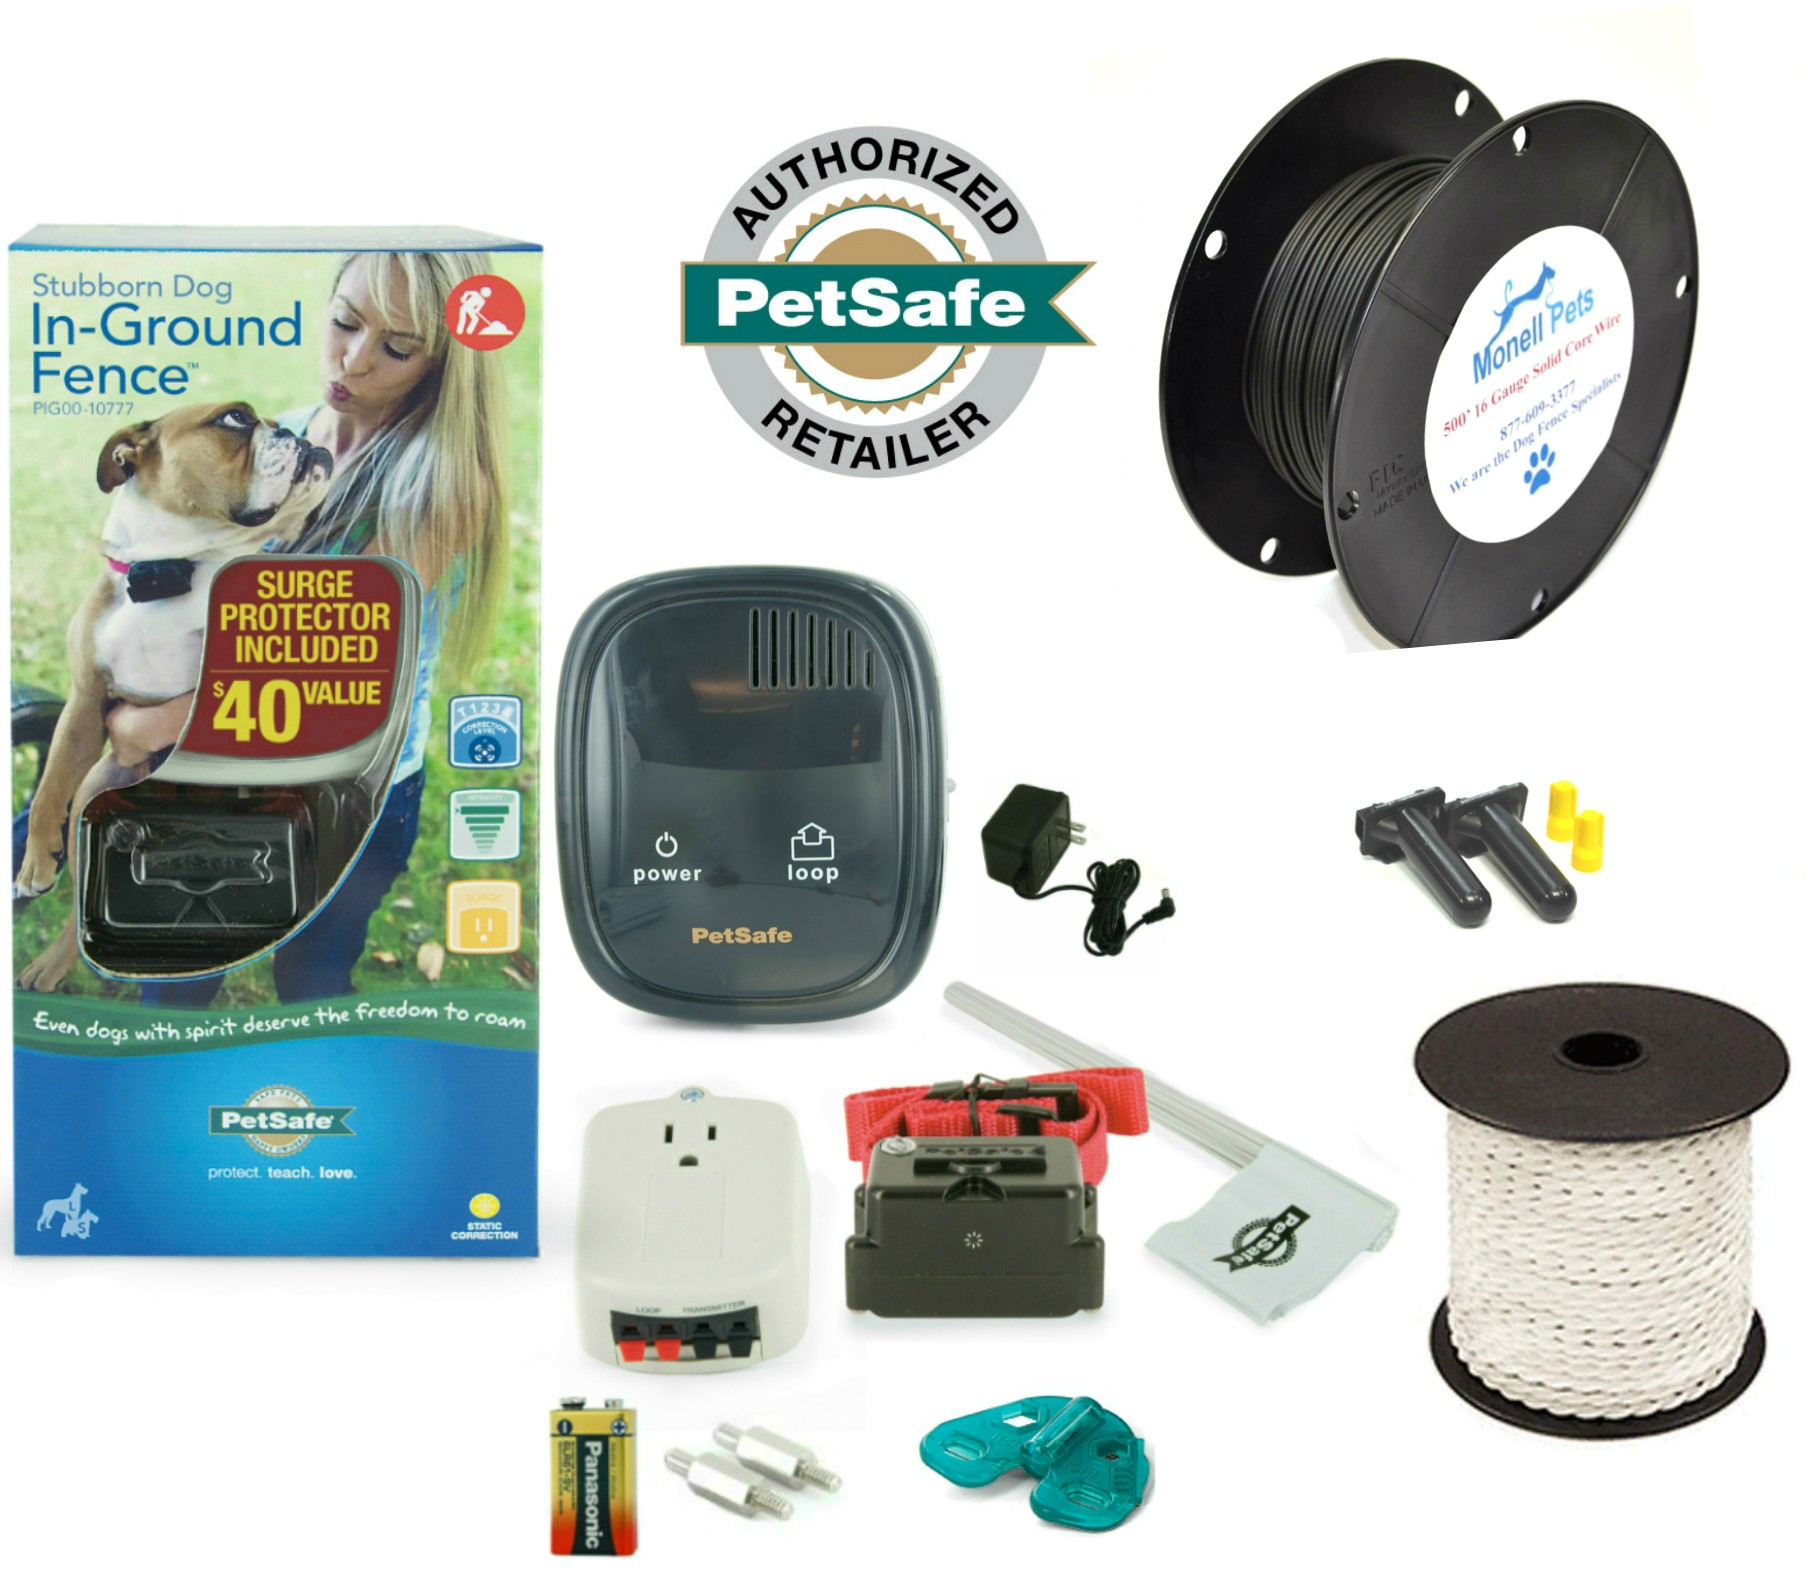 Petsafe Stubborn Dog In-Ground Containment Fence PIG00-10777 16 ...